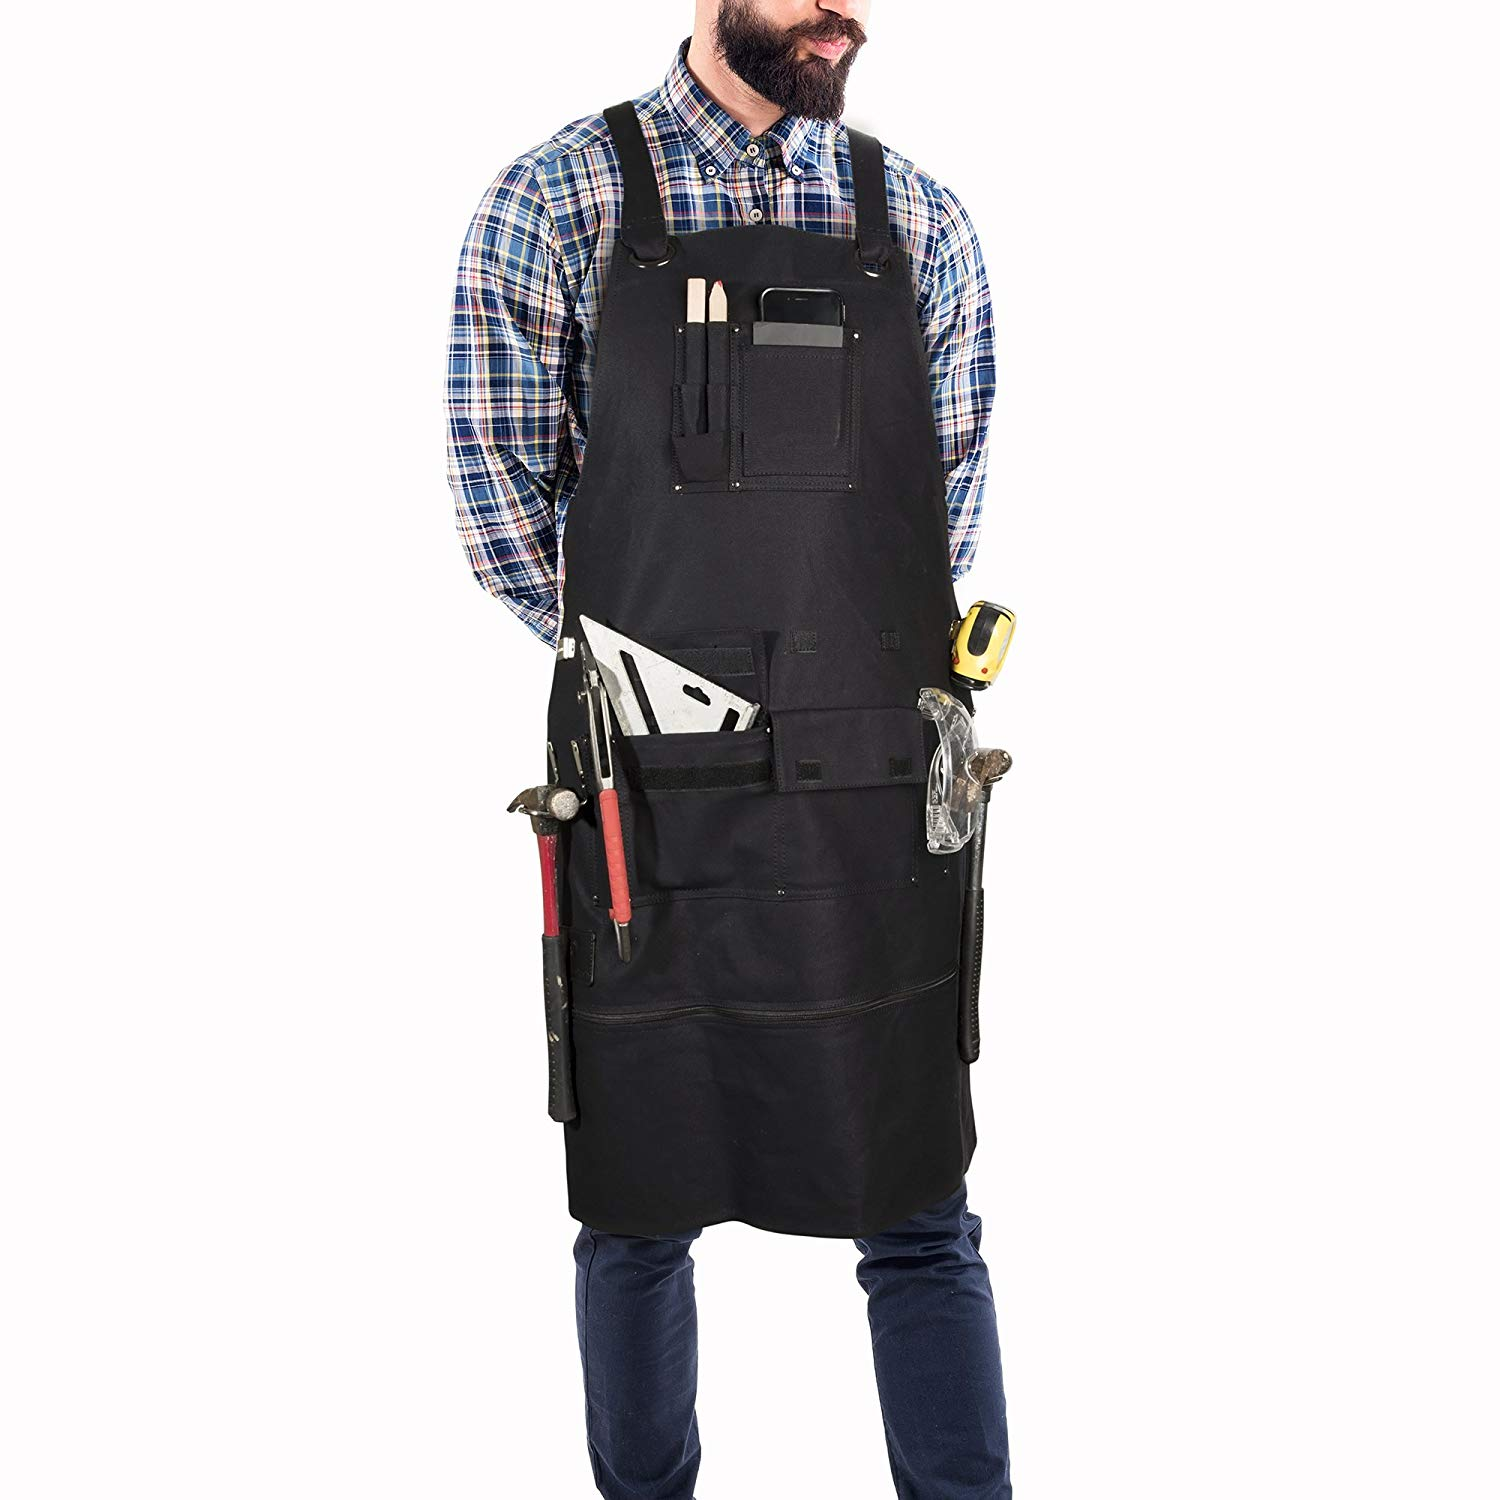 Premium Waxed Canvas Tool Apron with Metal Tape Measure Clip, Metal Hammer Holder, Metal Buckle, Adjustable Length 29-36in, Adjustable Back, Heavy Duty Woodworking Tattoo Barber Work Apron